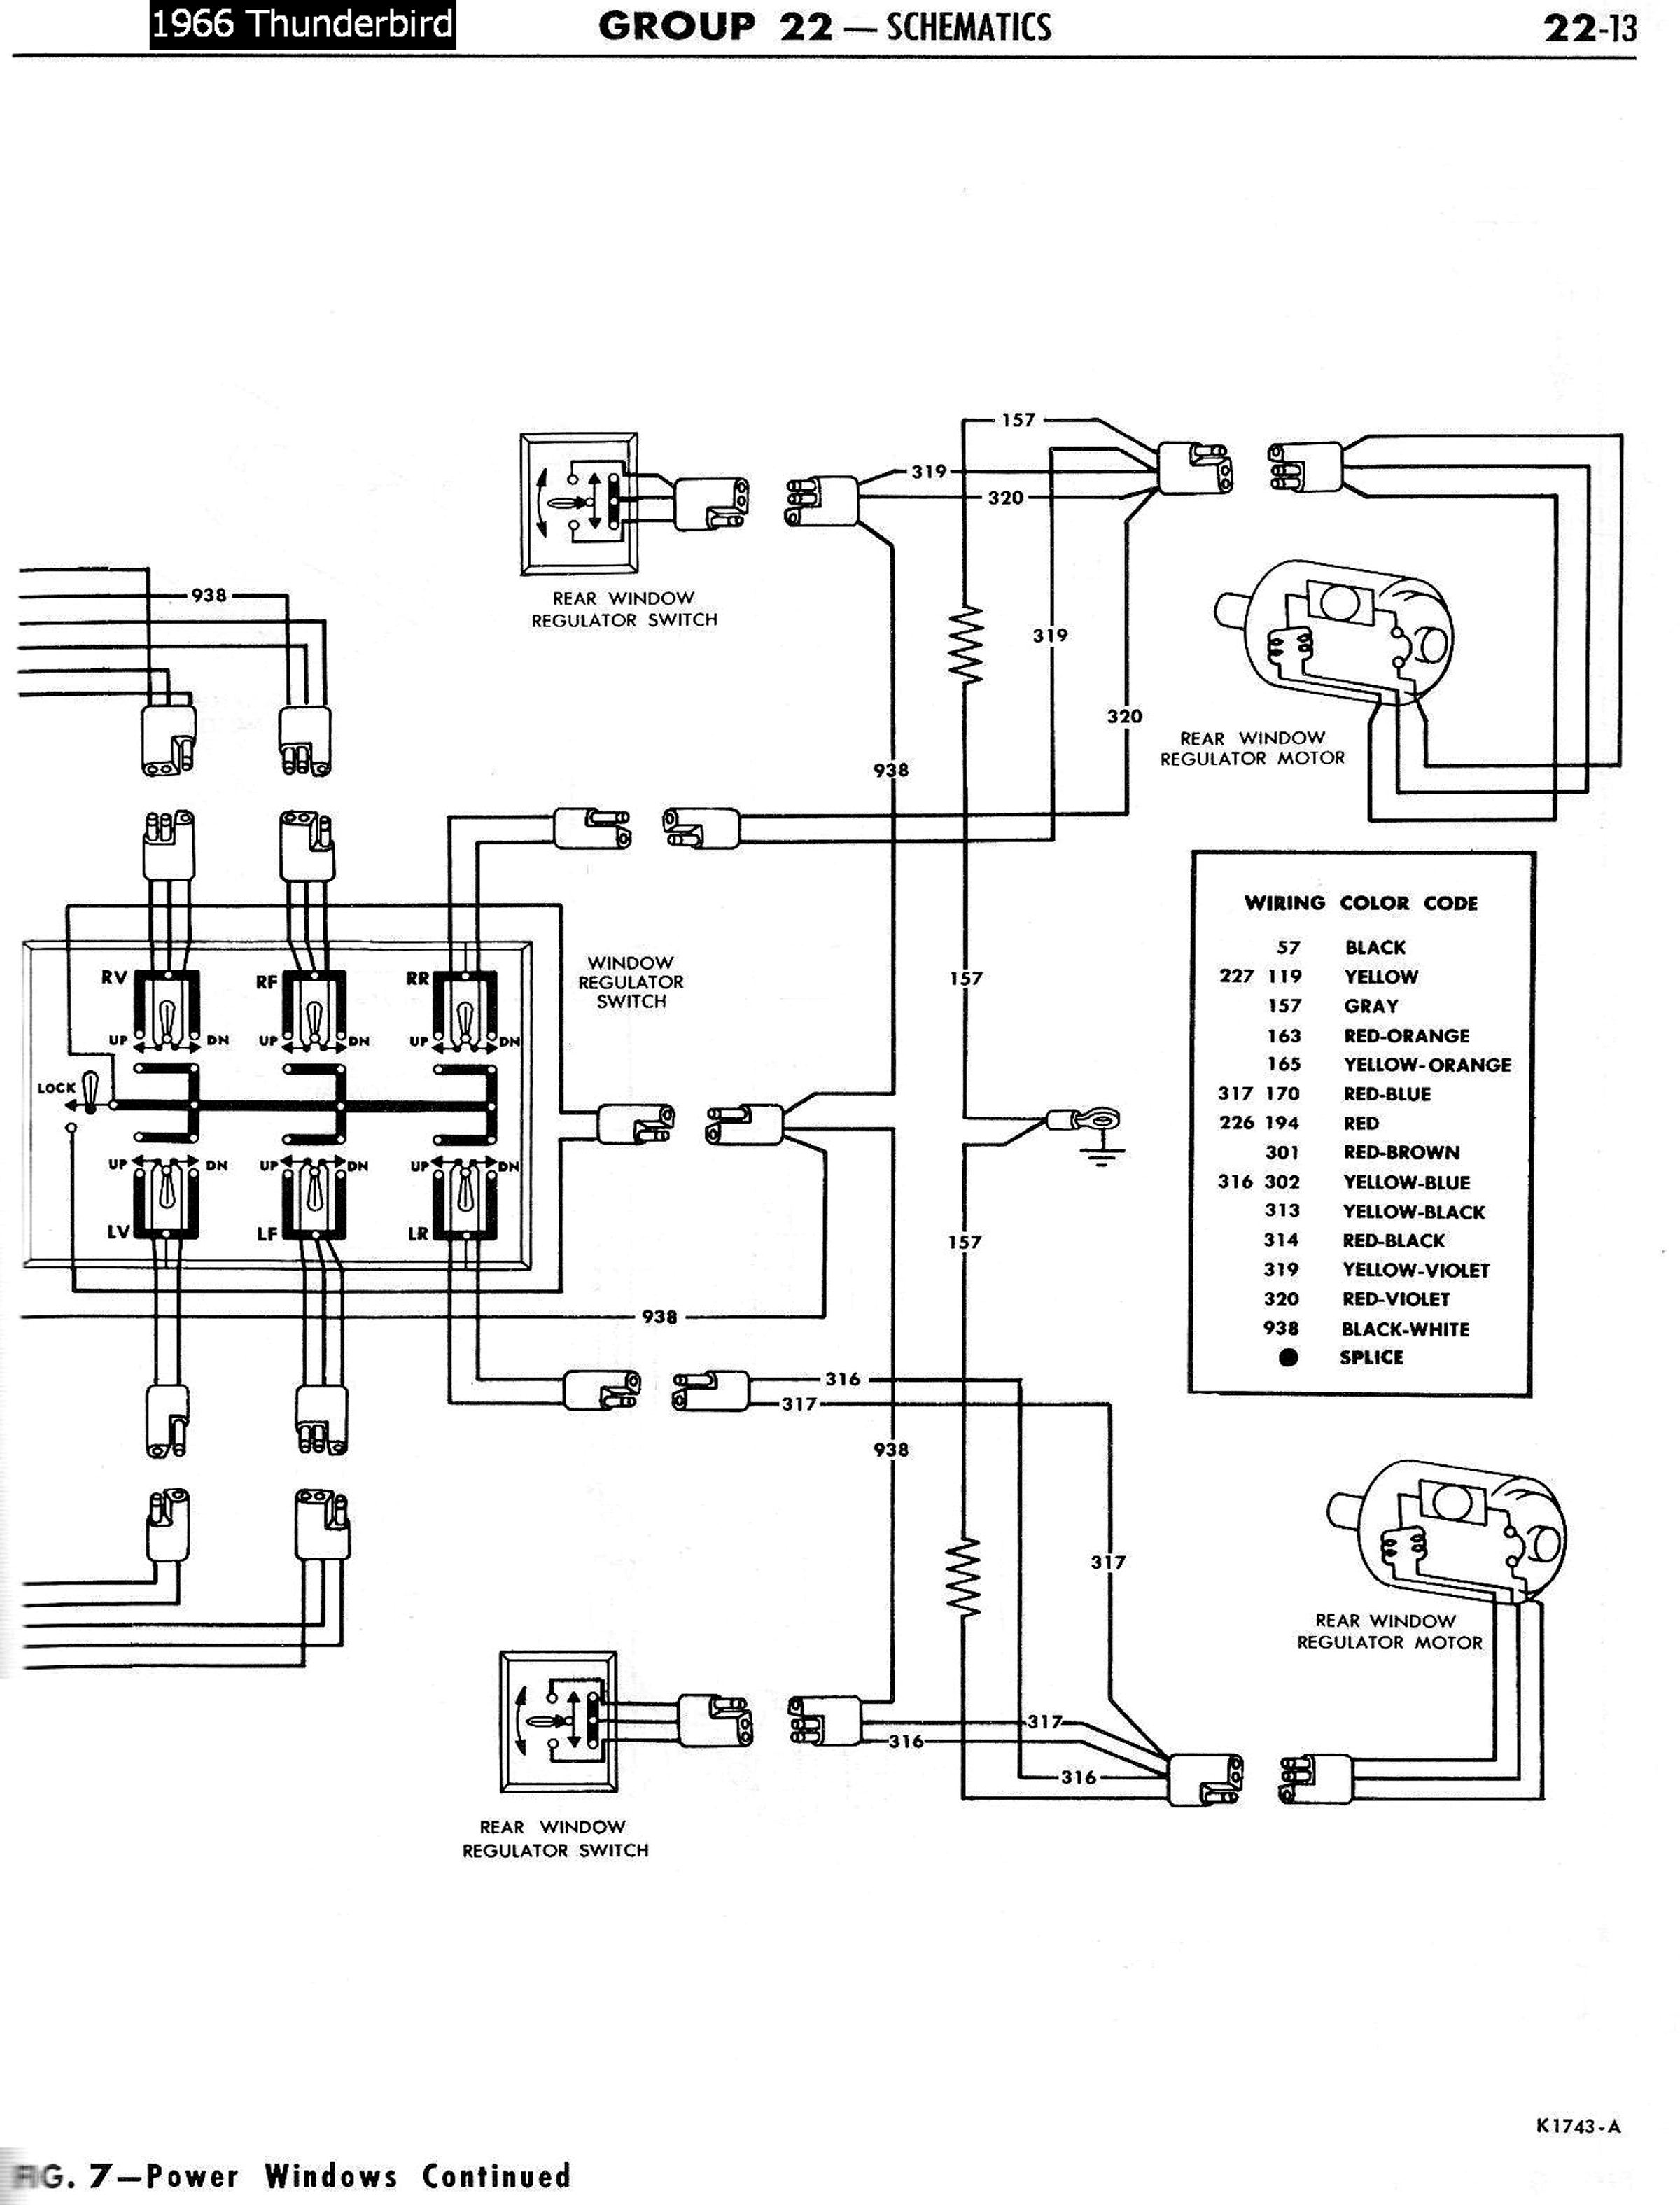 Turn Signal Wiring Diagram Ford List Of Schematic Circuit Wire Diagrams 02 F 150 1968 F100 Blinker Opinions About U2022 Rh Voterid Co 2002 F150